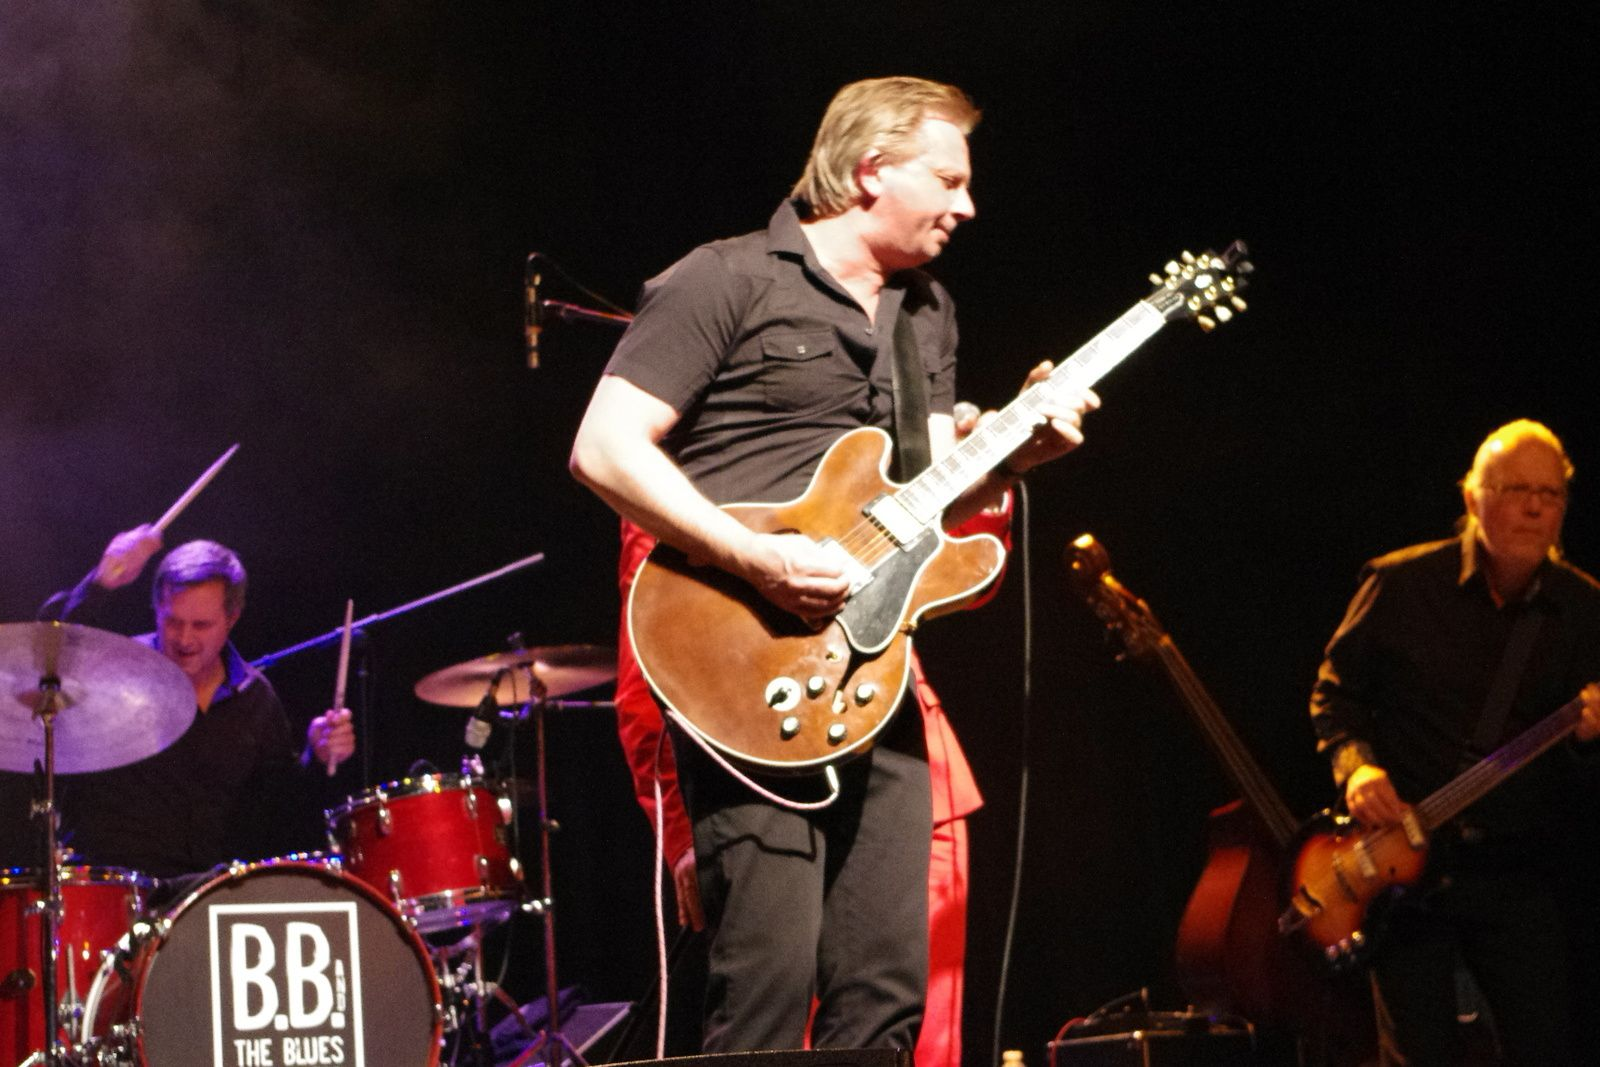 BB & The Blues Shacks - 24 janvier 2014 - 7 nights to blues, St André lez Lille (59)